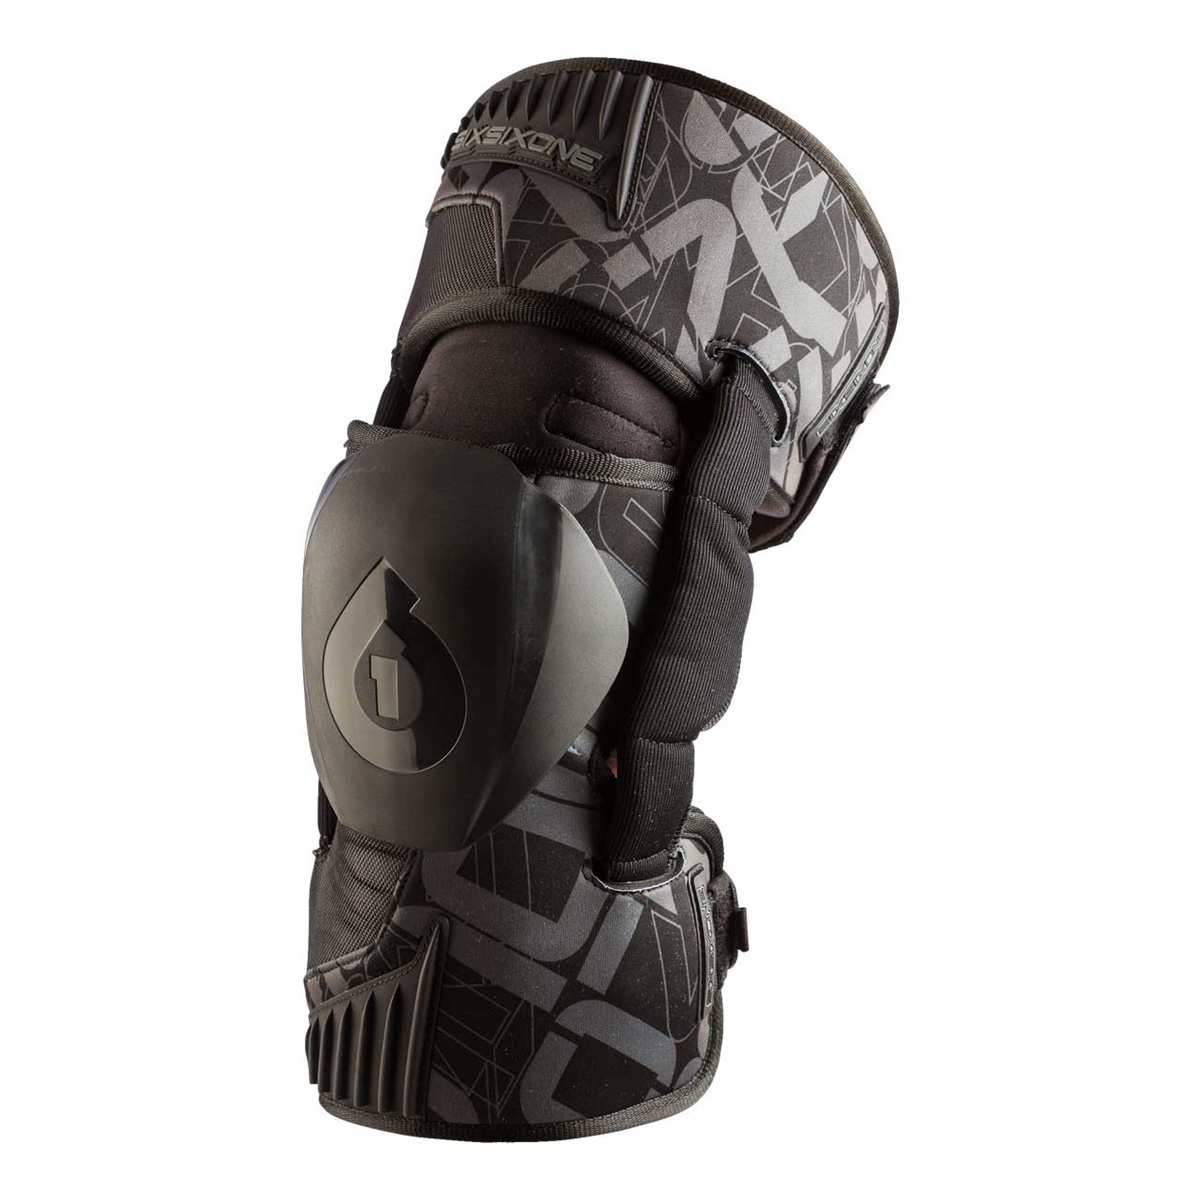 SixSixOne 2015 Youth Rage Knee Guard MX Support - 7021